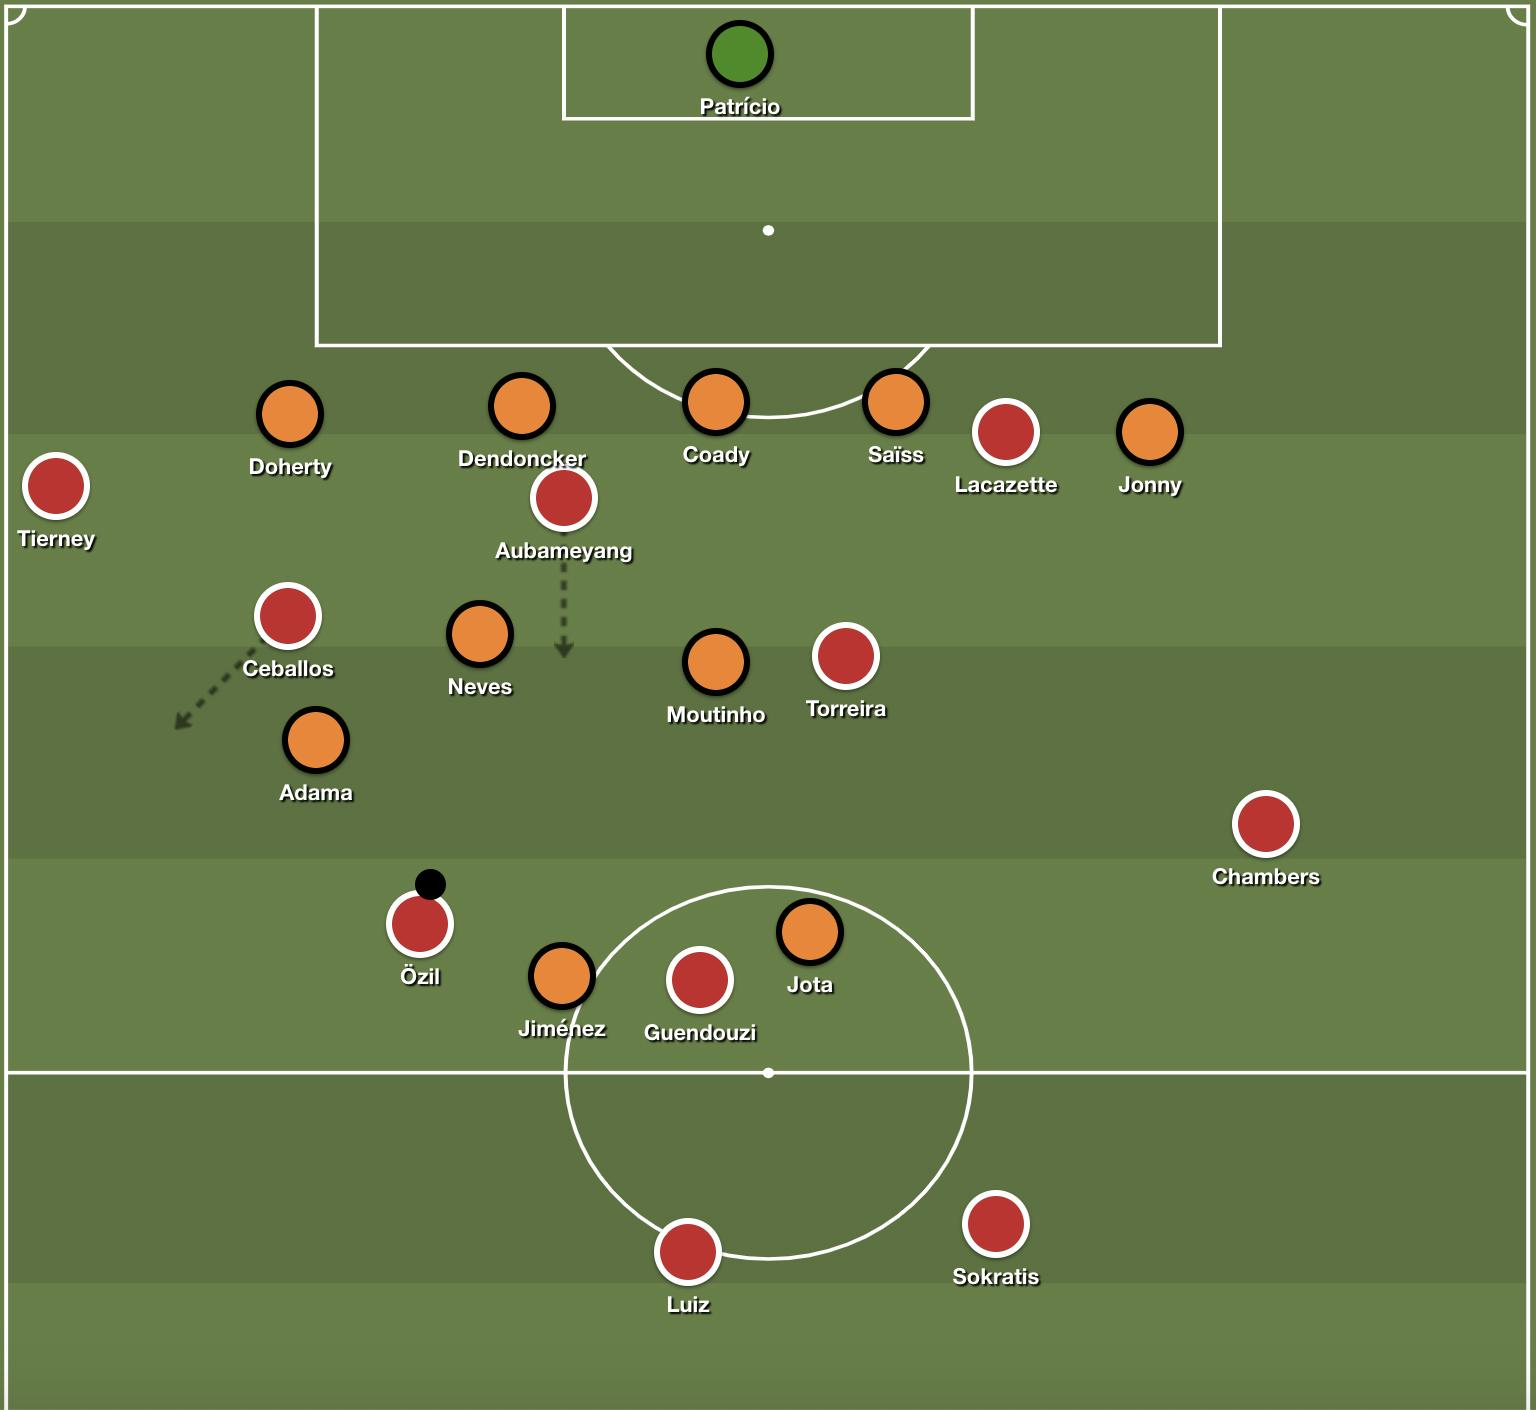 The Arsenal midfield rotating, in combination with the near-sided striker, to create a network of options for the ball-holder.